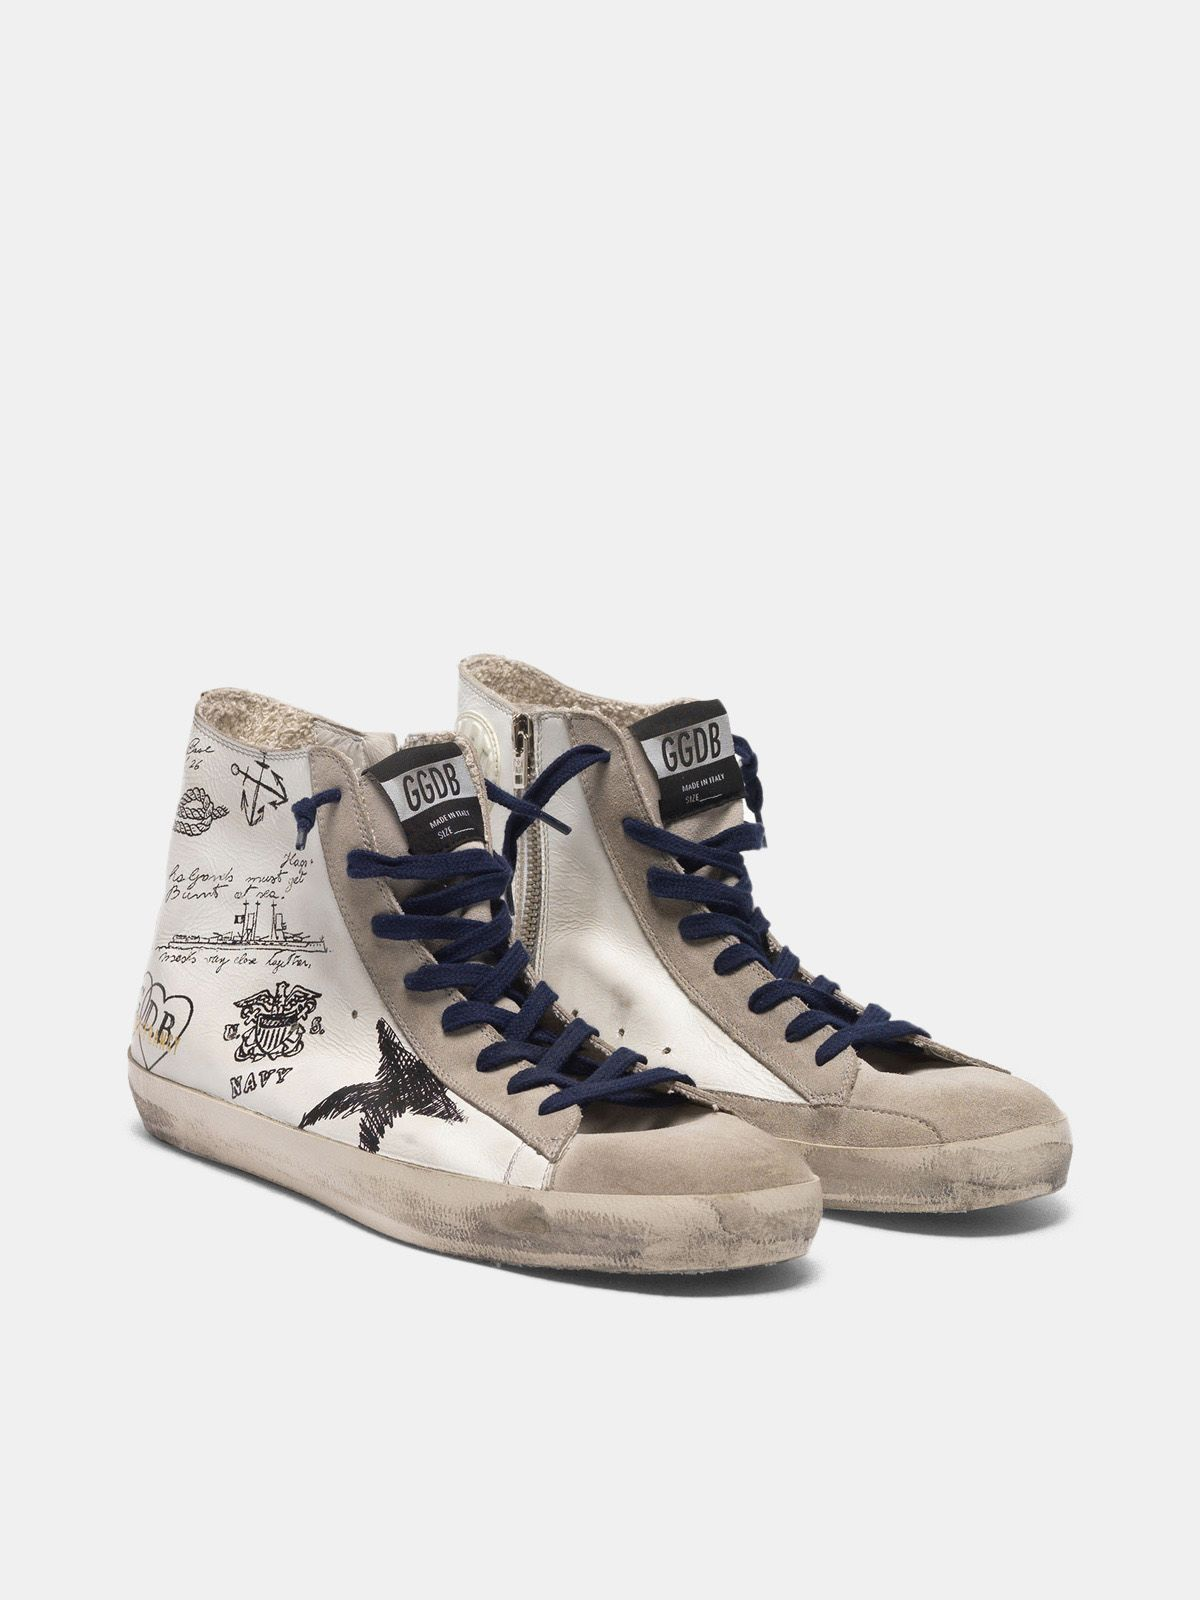 Golden Goose - Francy sneakers in leather with tattoo prints in